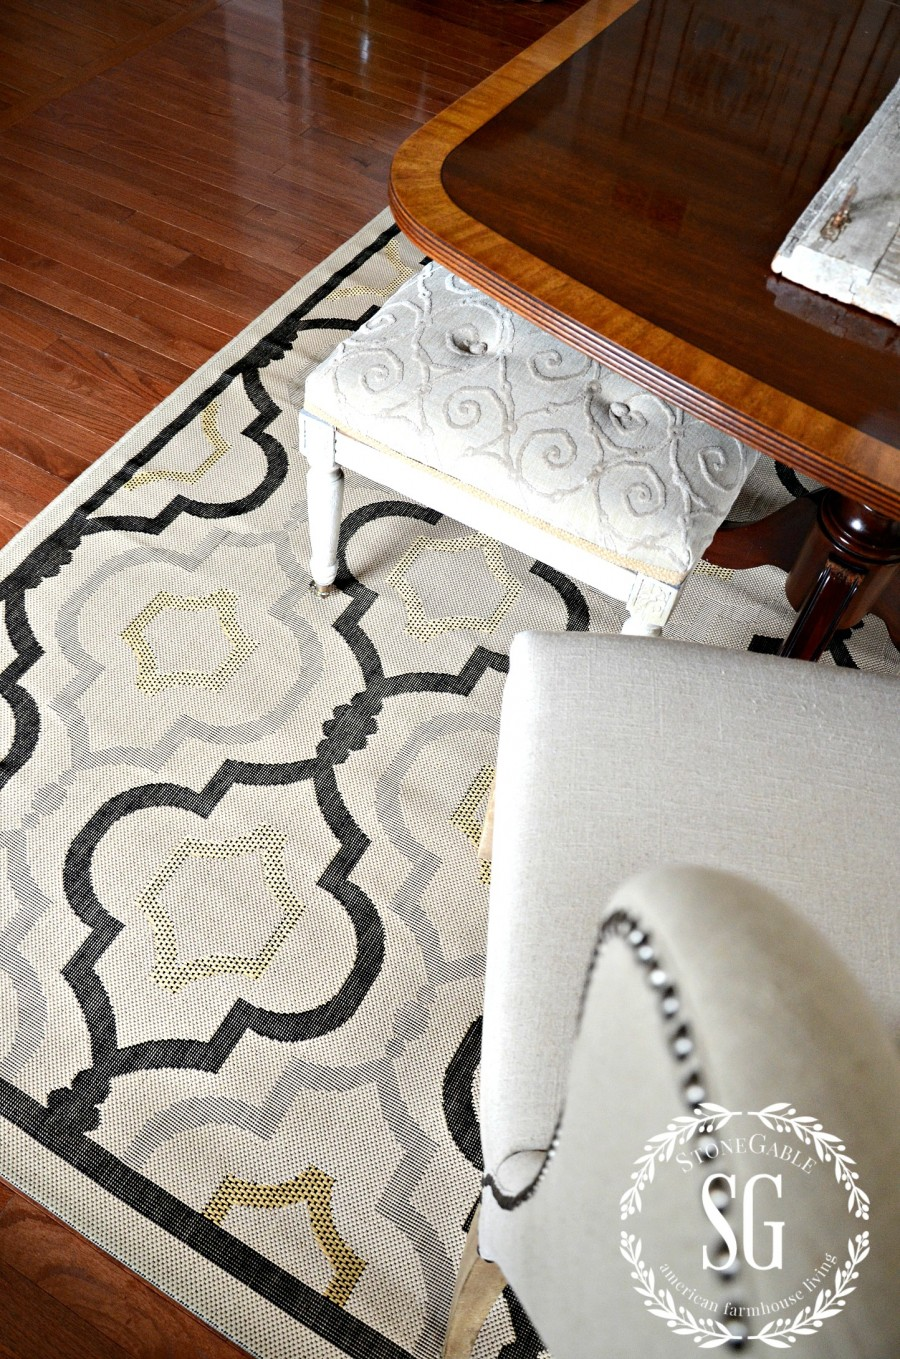 5 RULES FOR CHOOSING THE PERFECT DINING ROOM RUG-chosing a low nap rug-stonegableblog.com